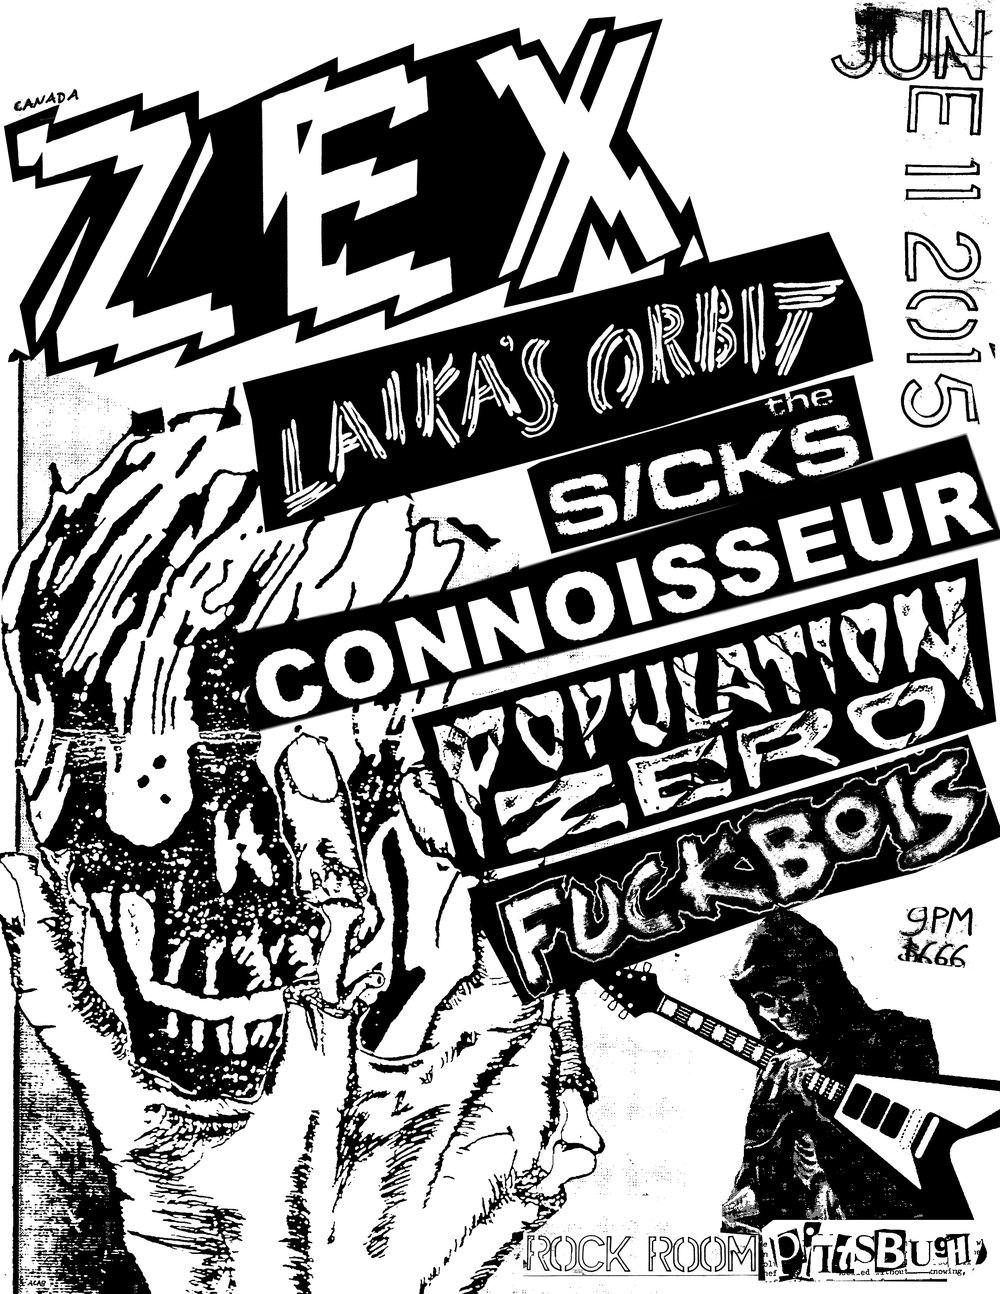 flyer-15.06.11-pittsburgh-zex.jpg